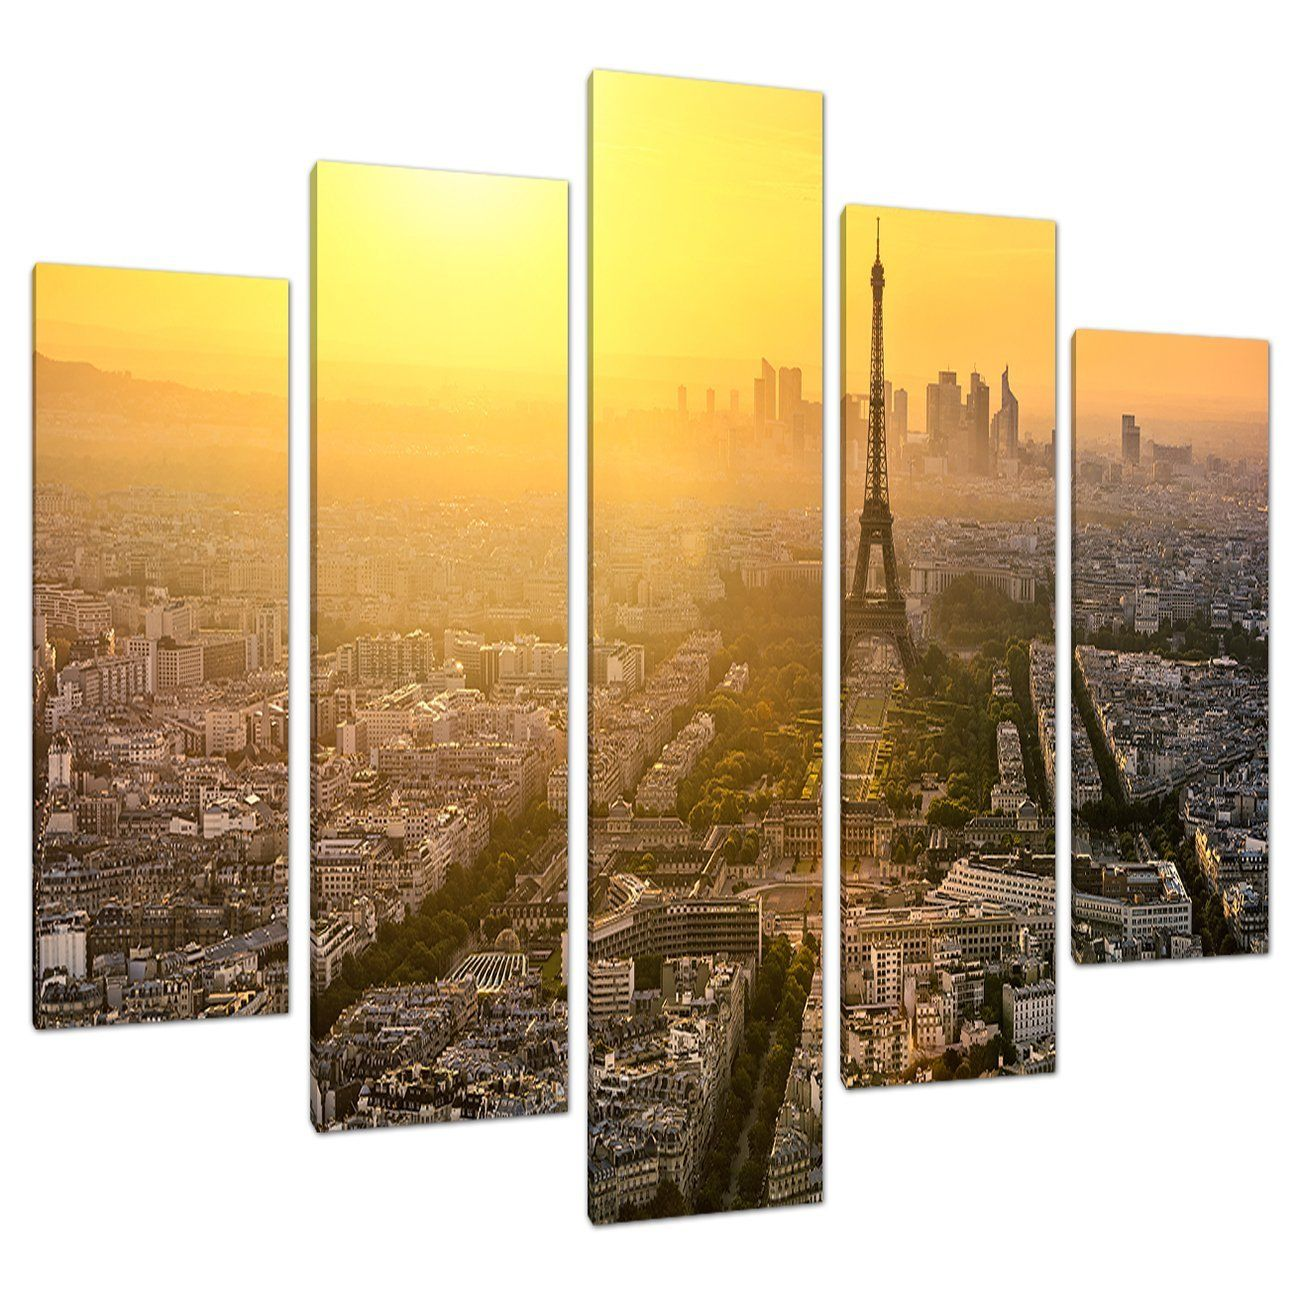 Set 5 Eiffel Tower Yellow Canvas Wall Art Pictures Paris France 5153 ...